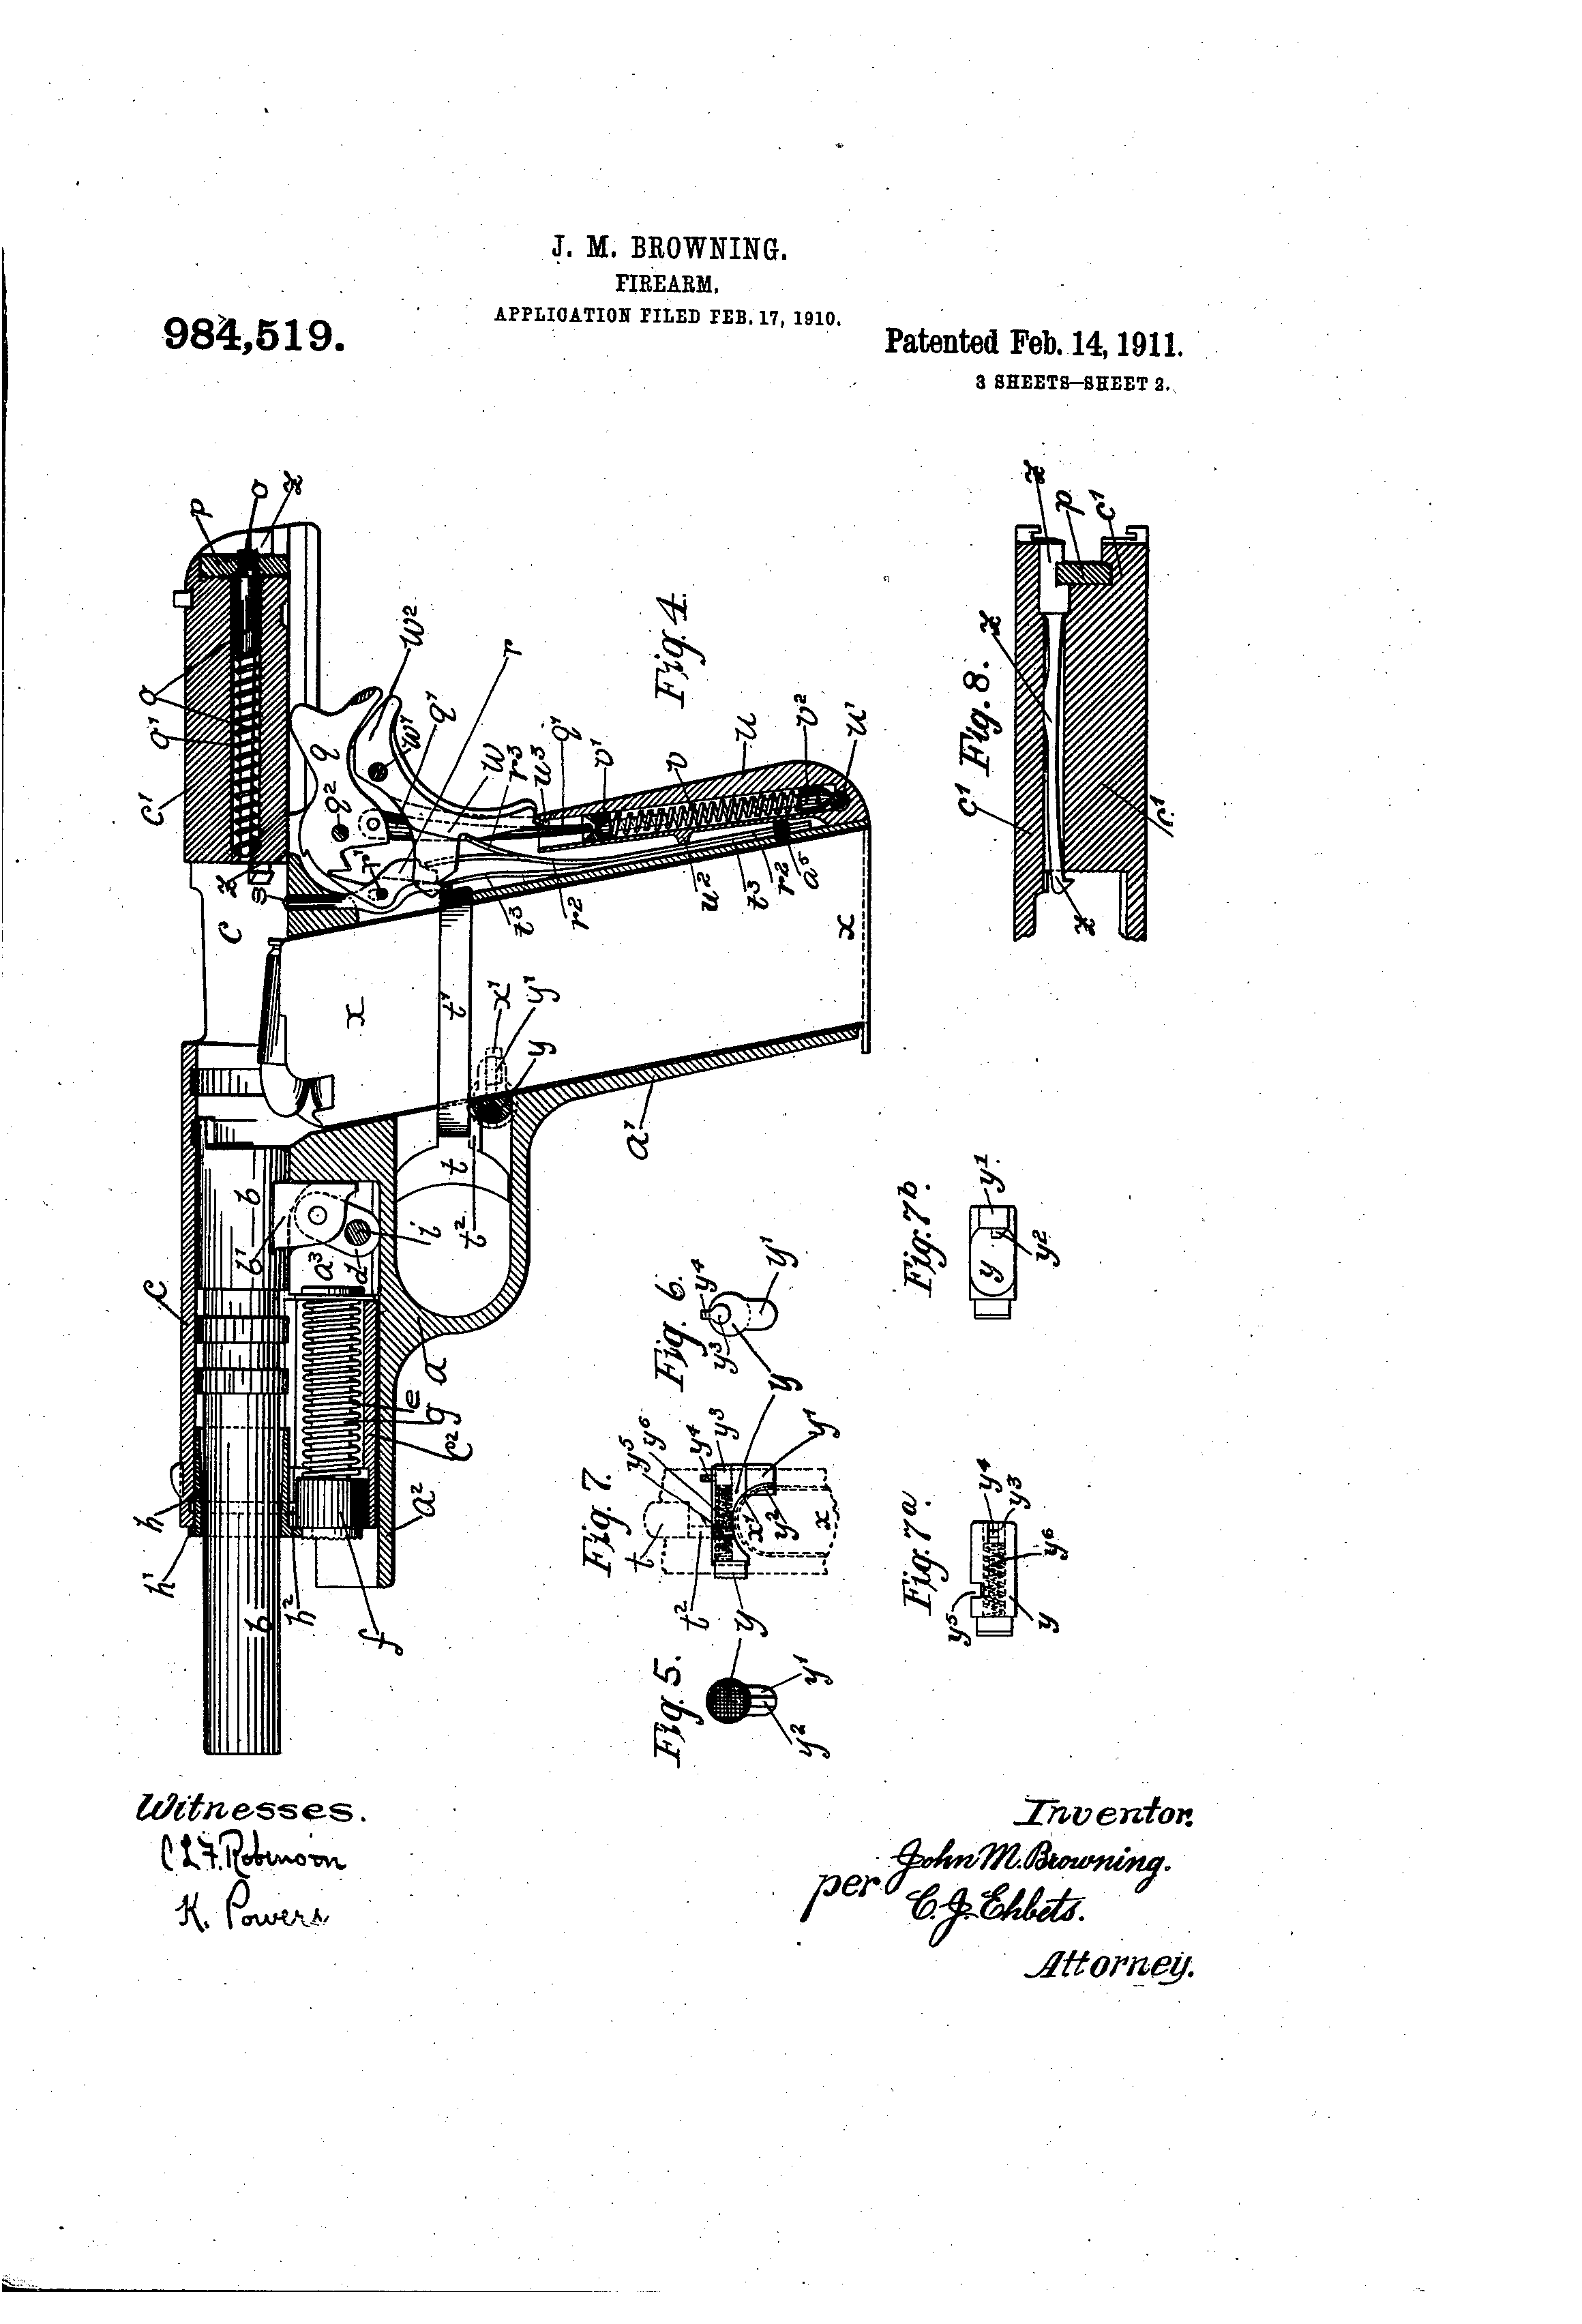 A Little Invention By Jmb Was Patented On This Day In